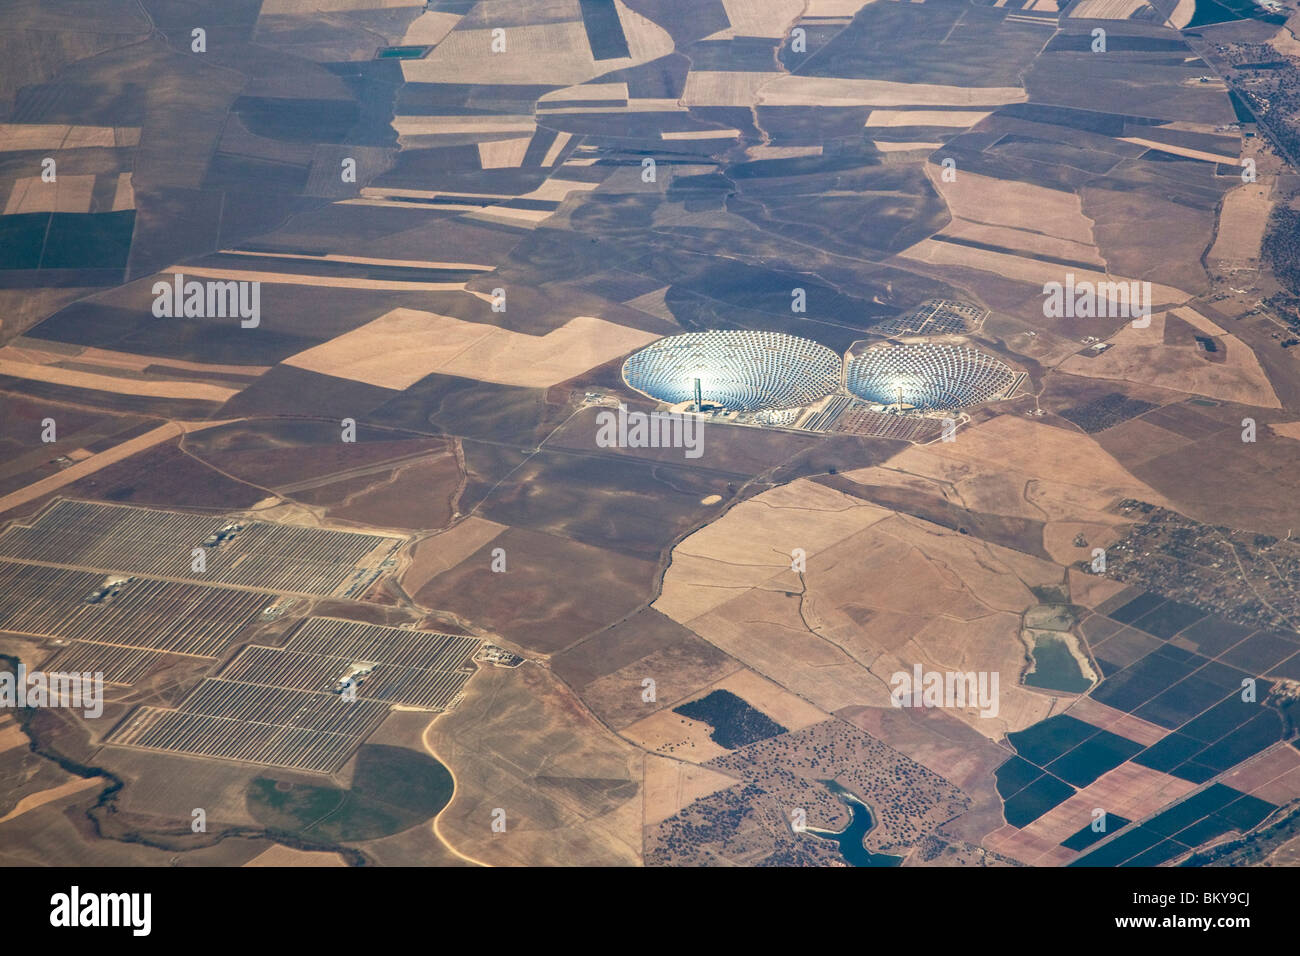 Aerial view of Solar Power Plant Eureka, Spain, Europe - Stock Image